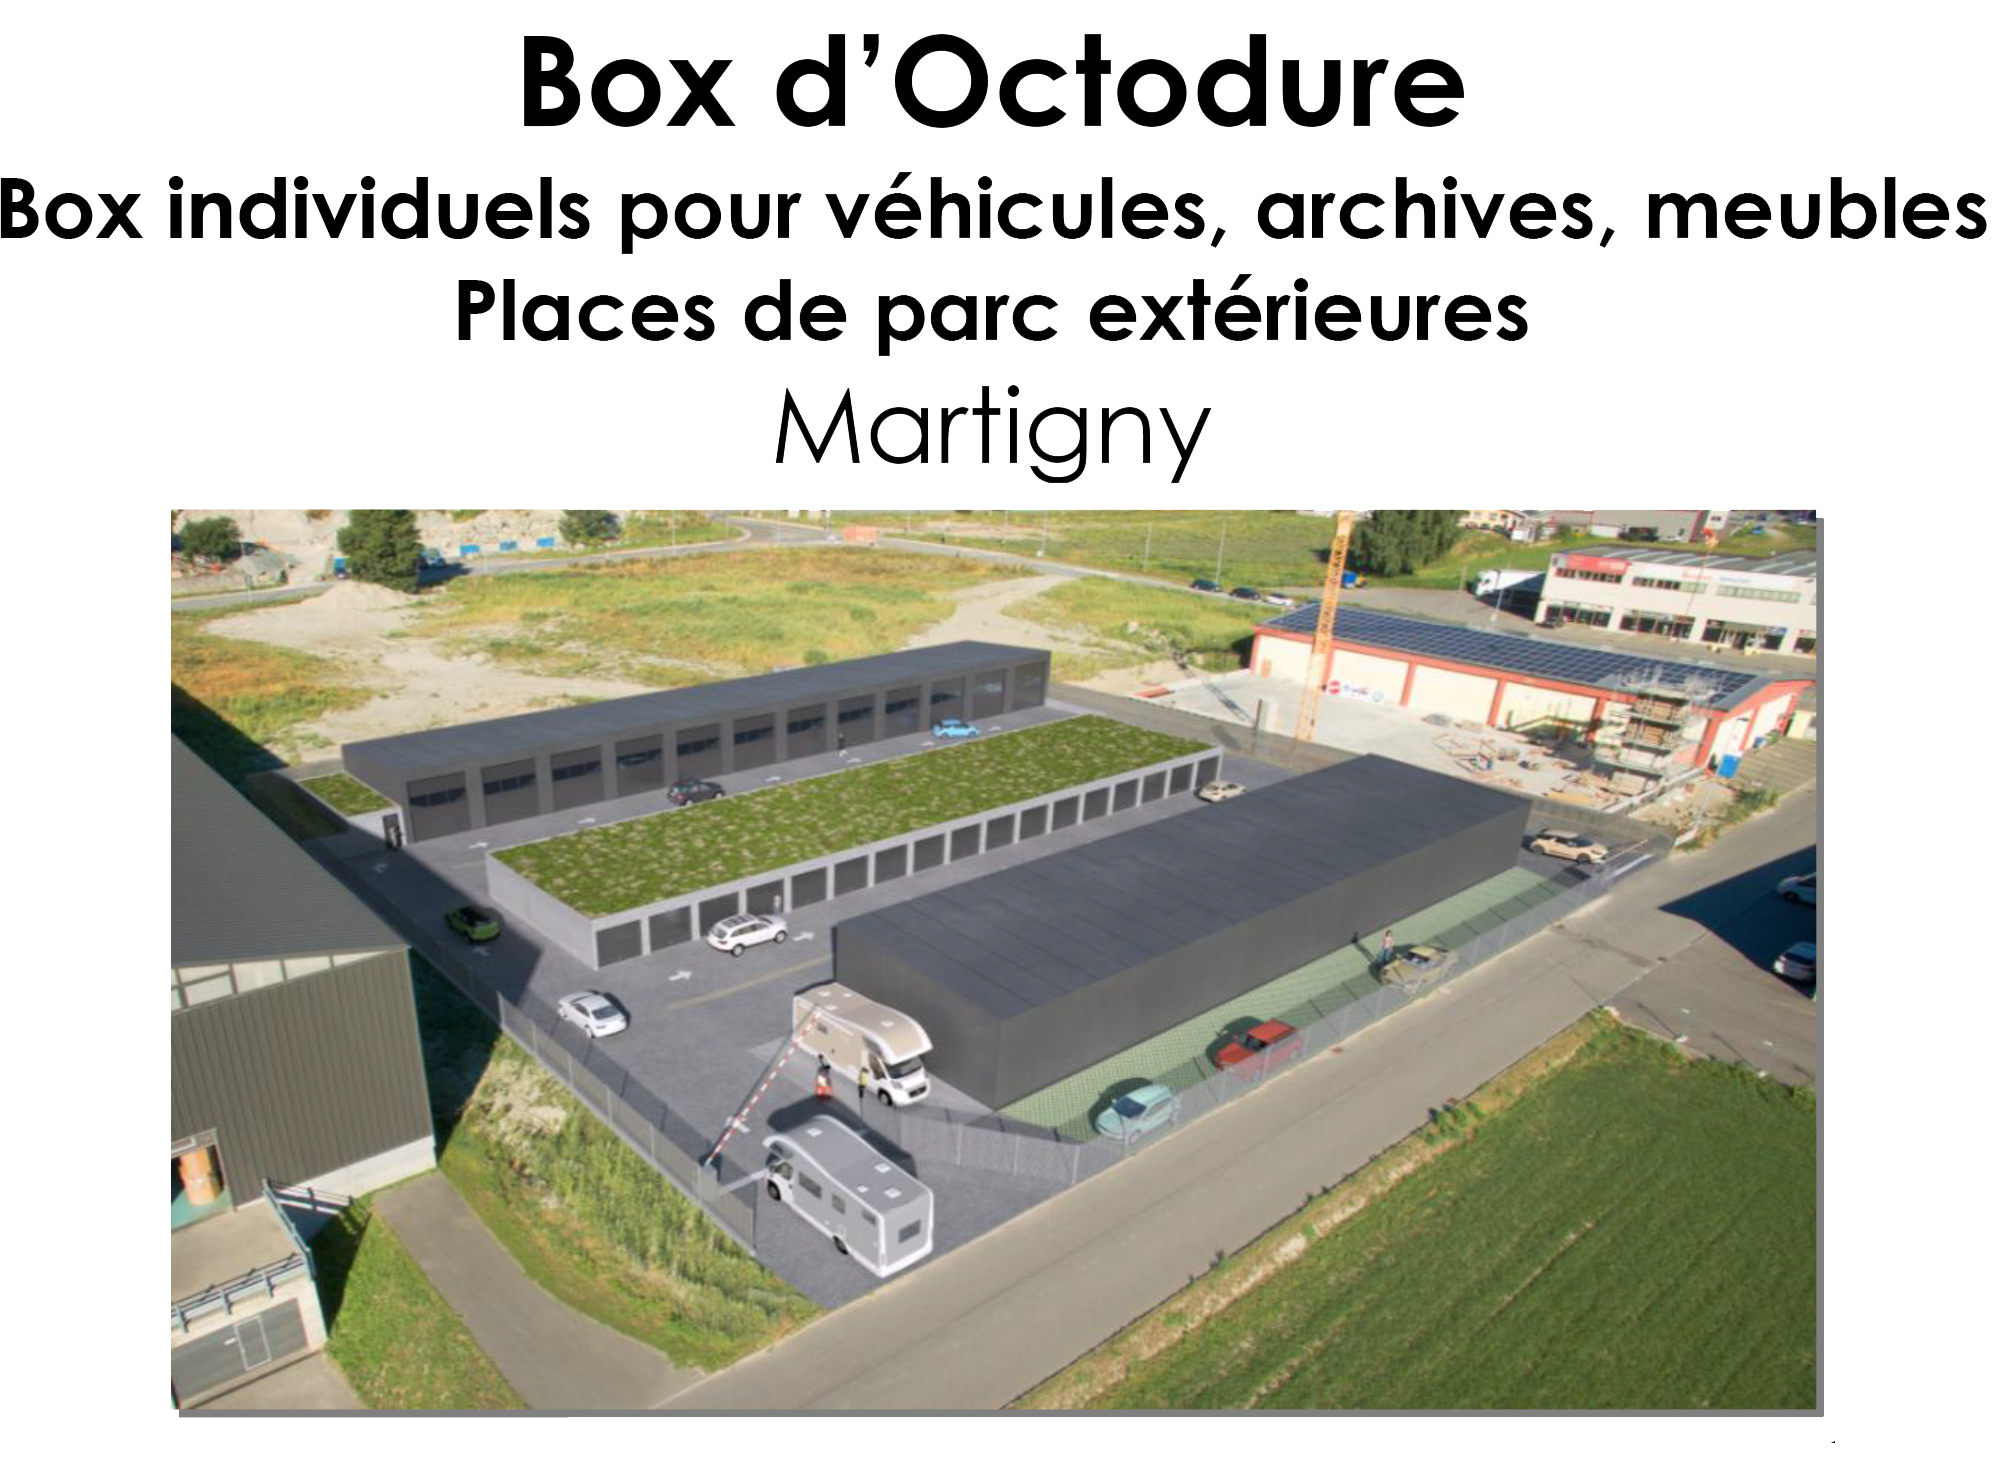 Box d'Octodure